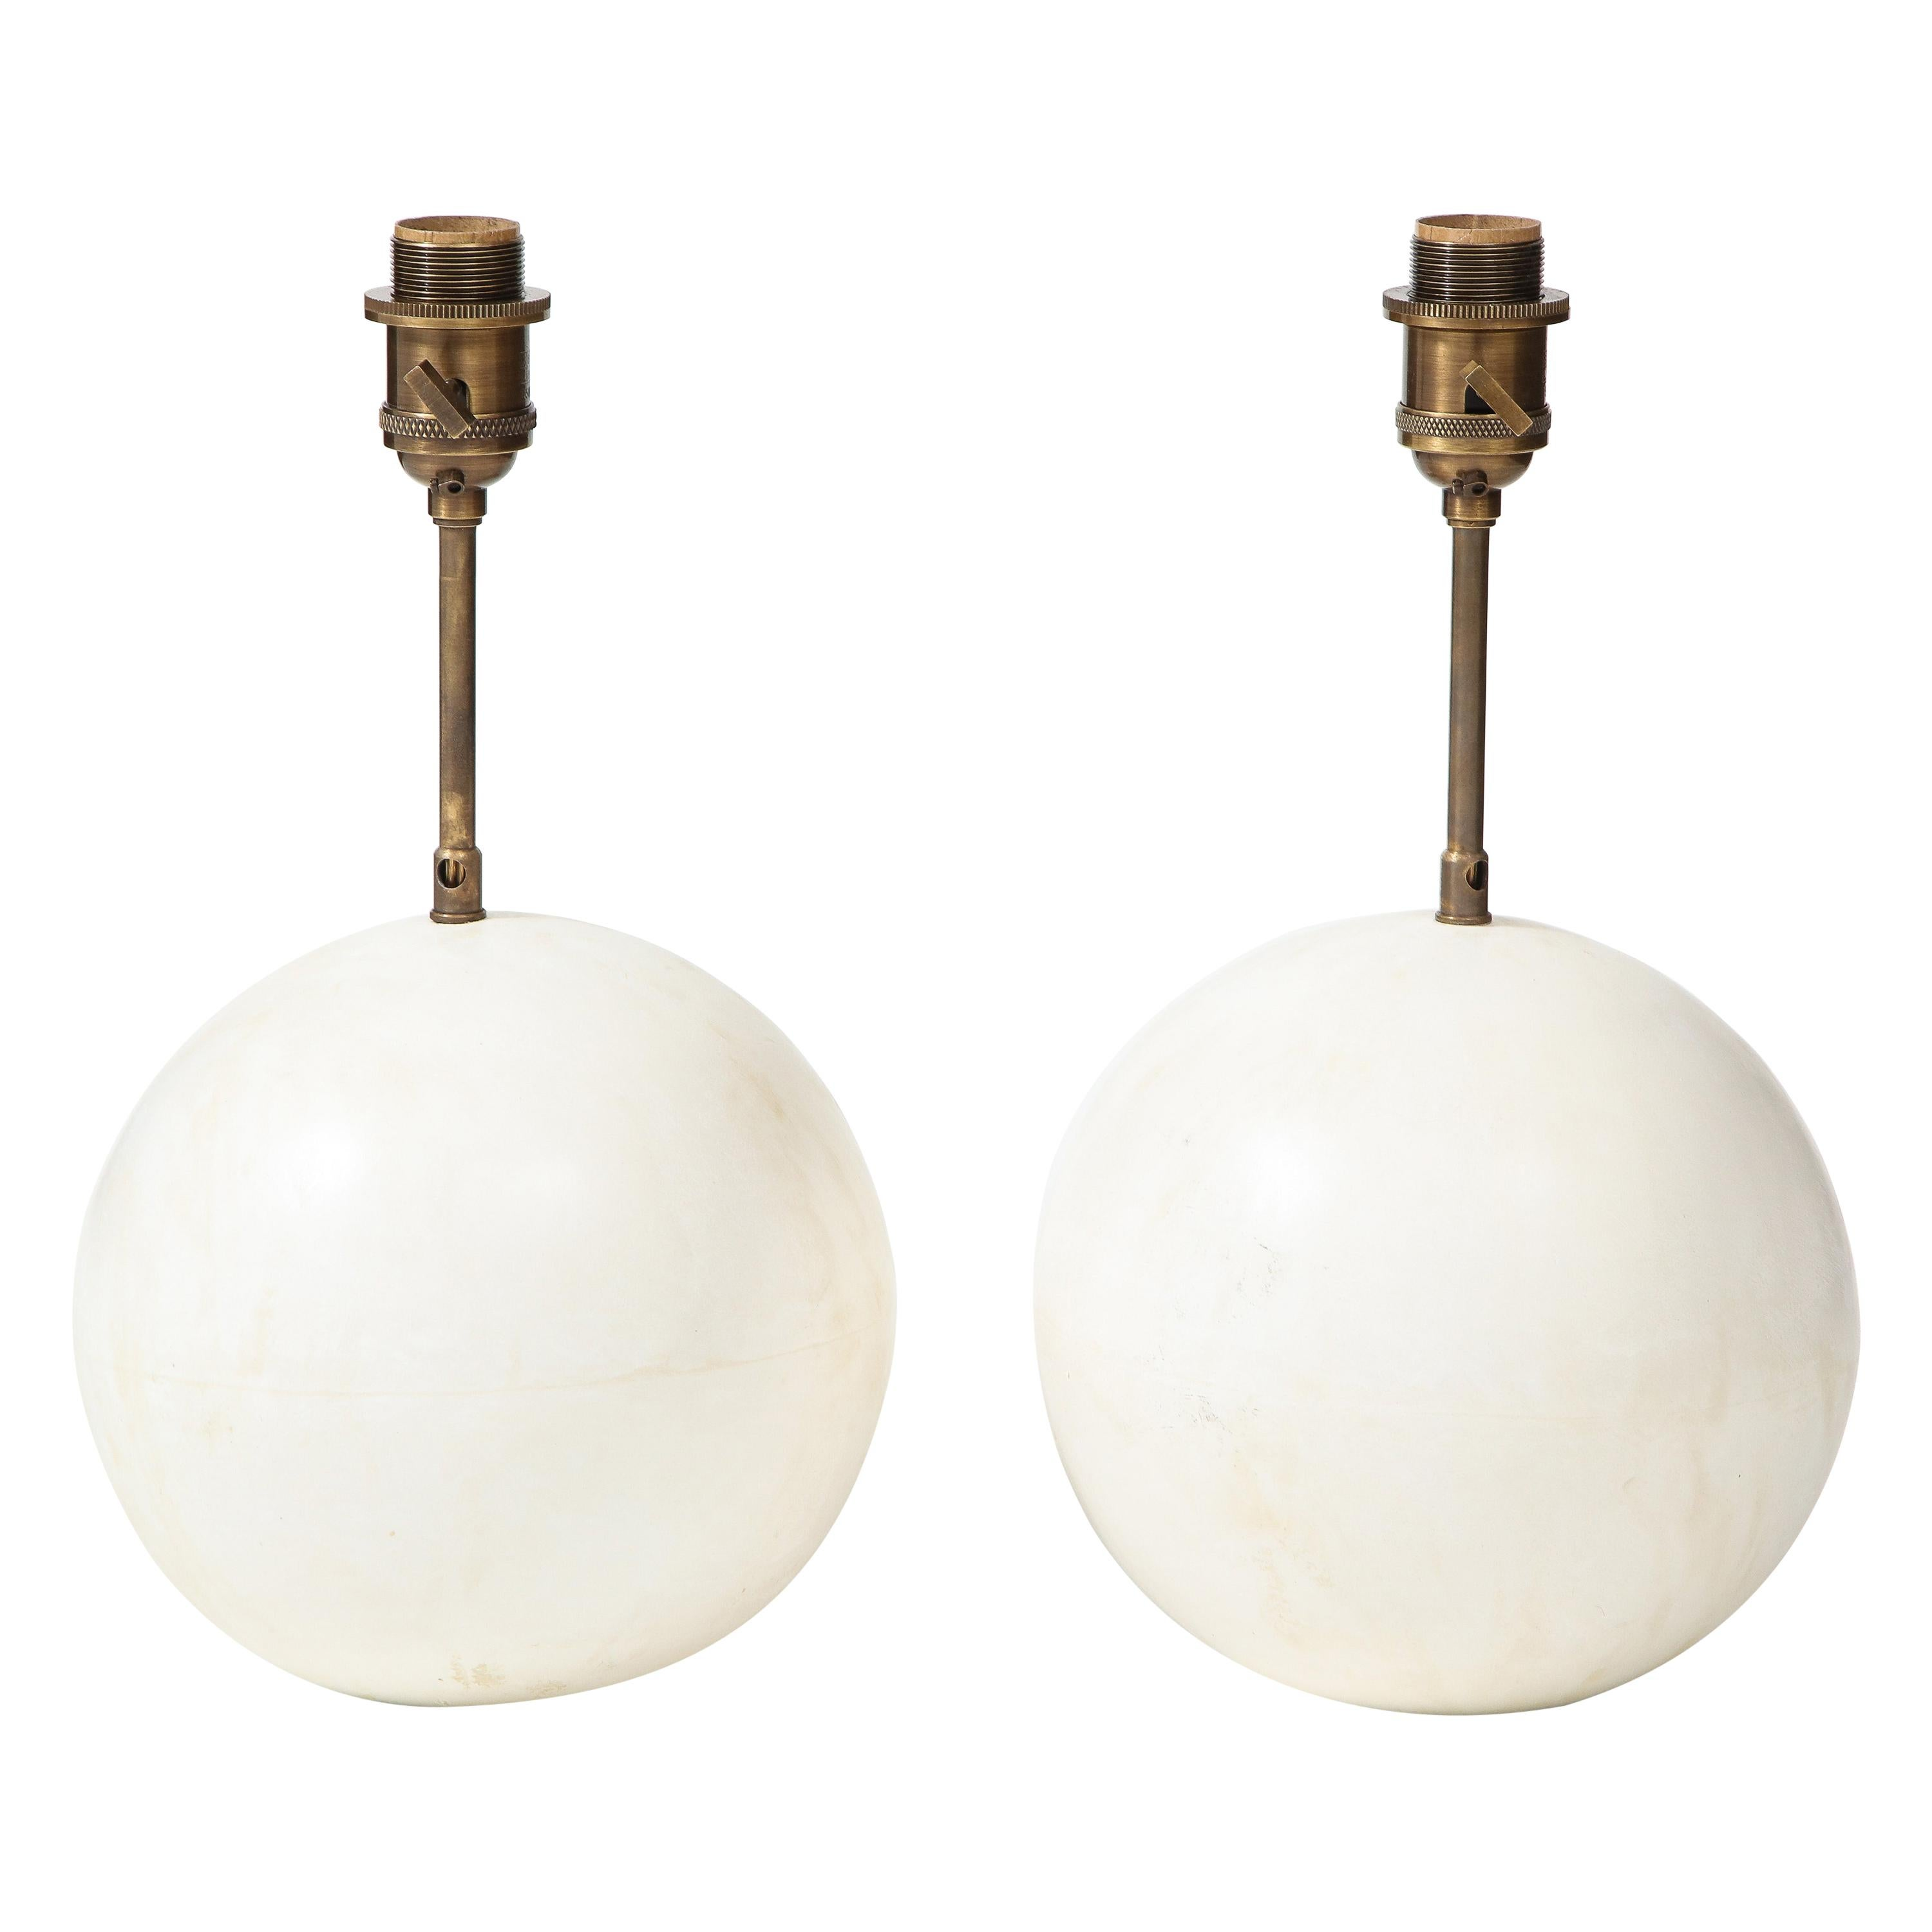 Pair of Creme White Plaster Table Lamps by Facto Atelier Paris, France, 2020